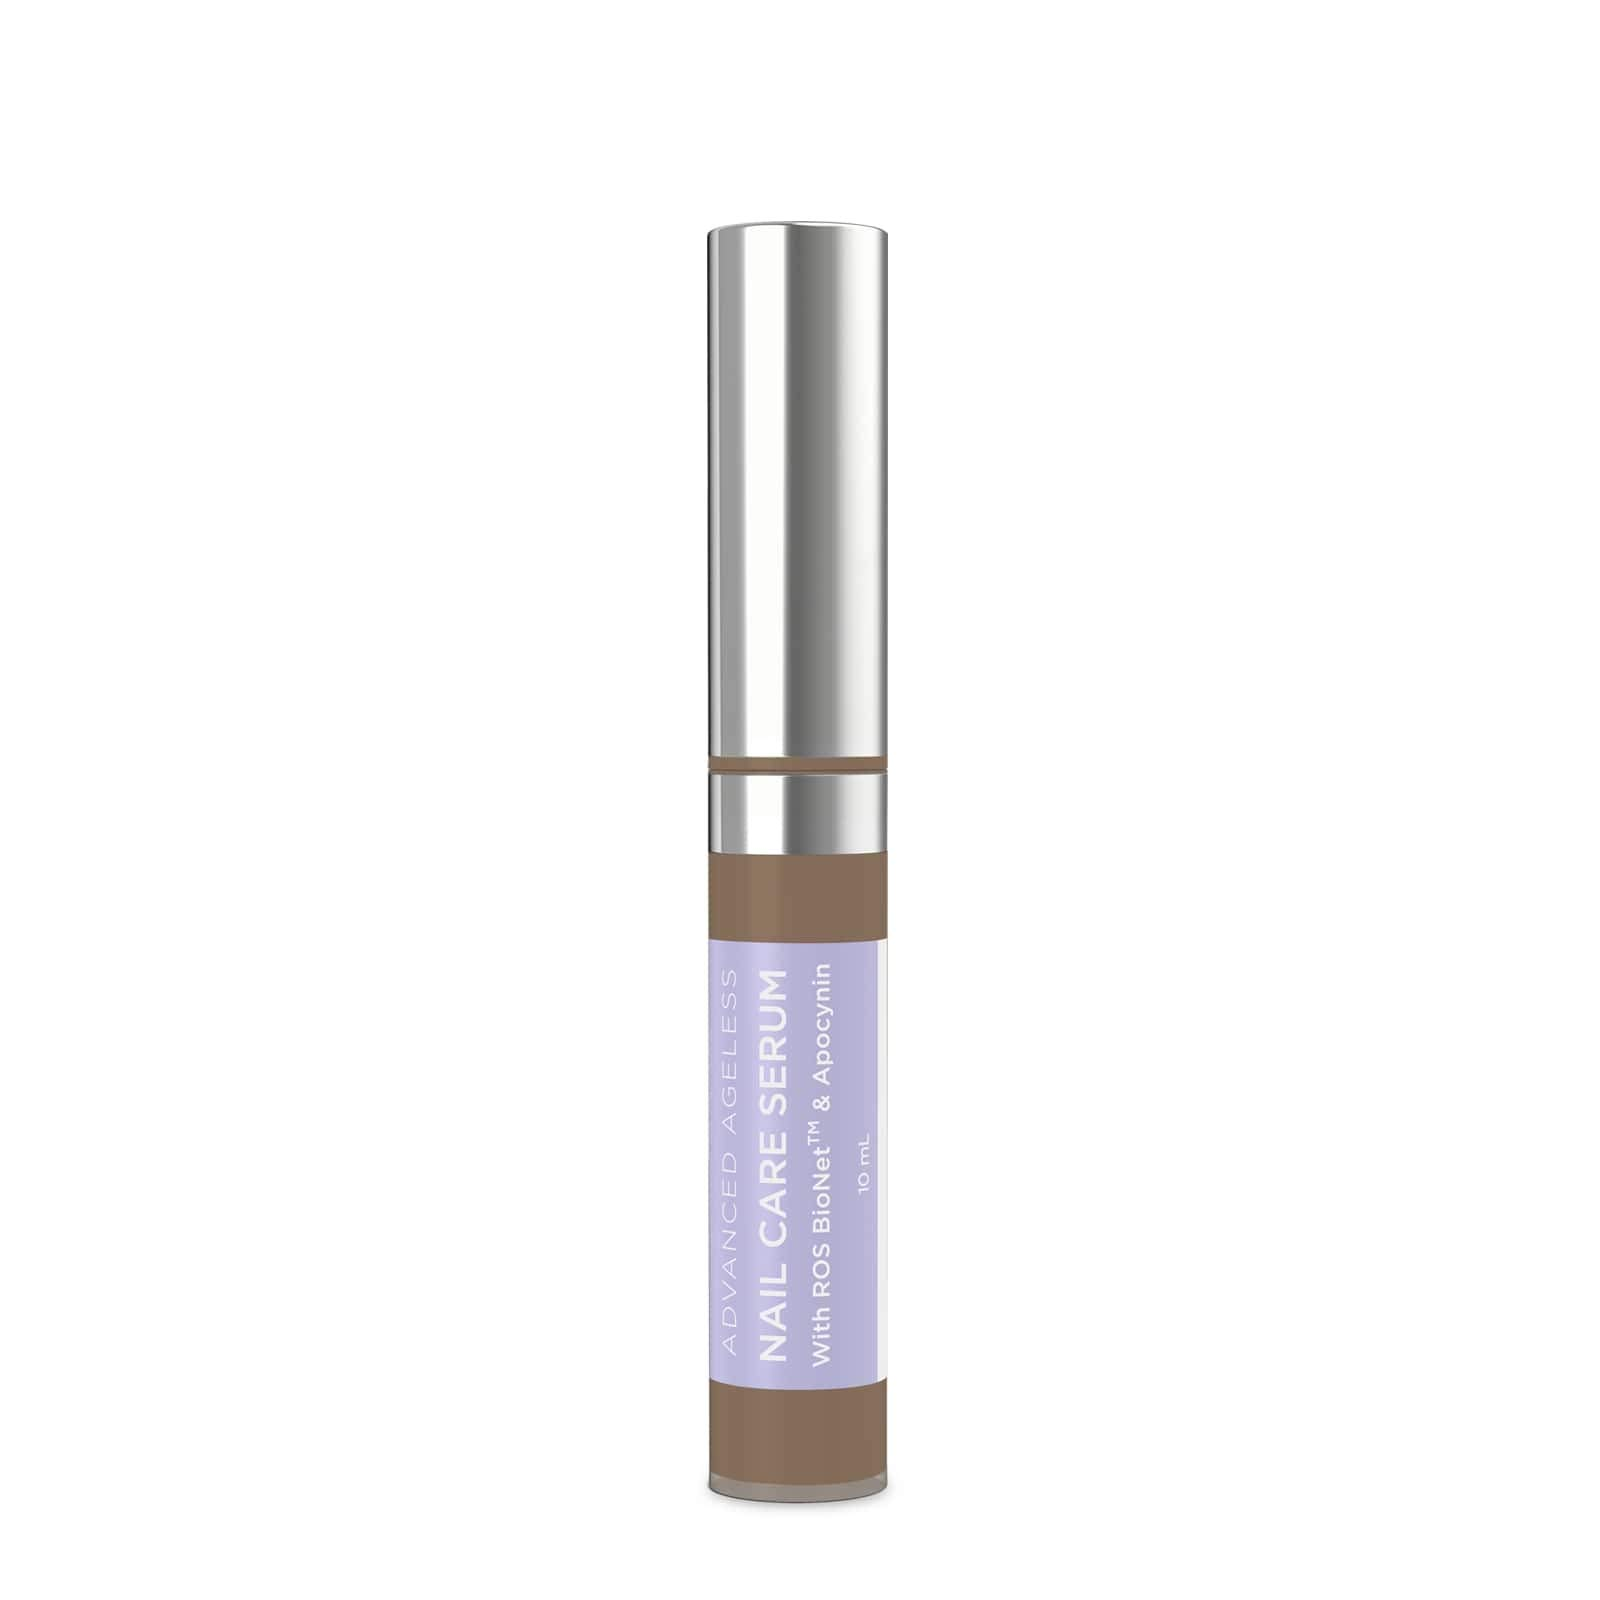 Nail Serum with ROS BioNet and Apocynin by Skin Actives